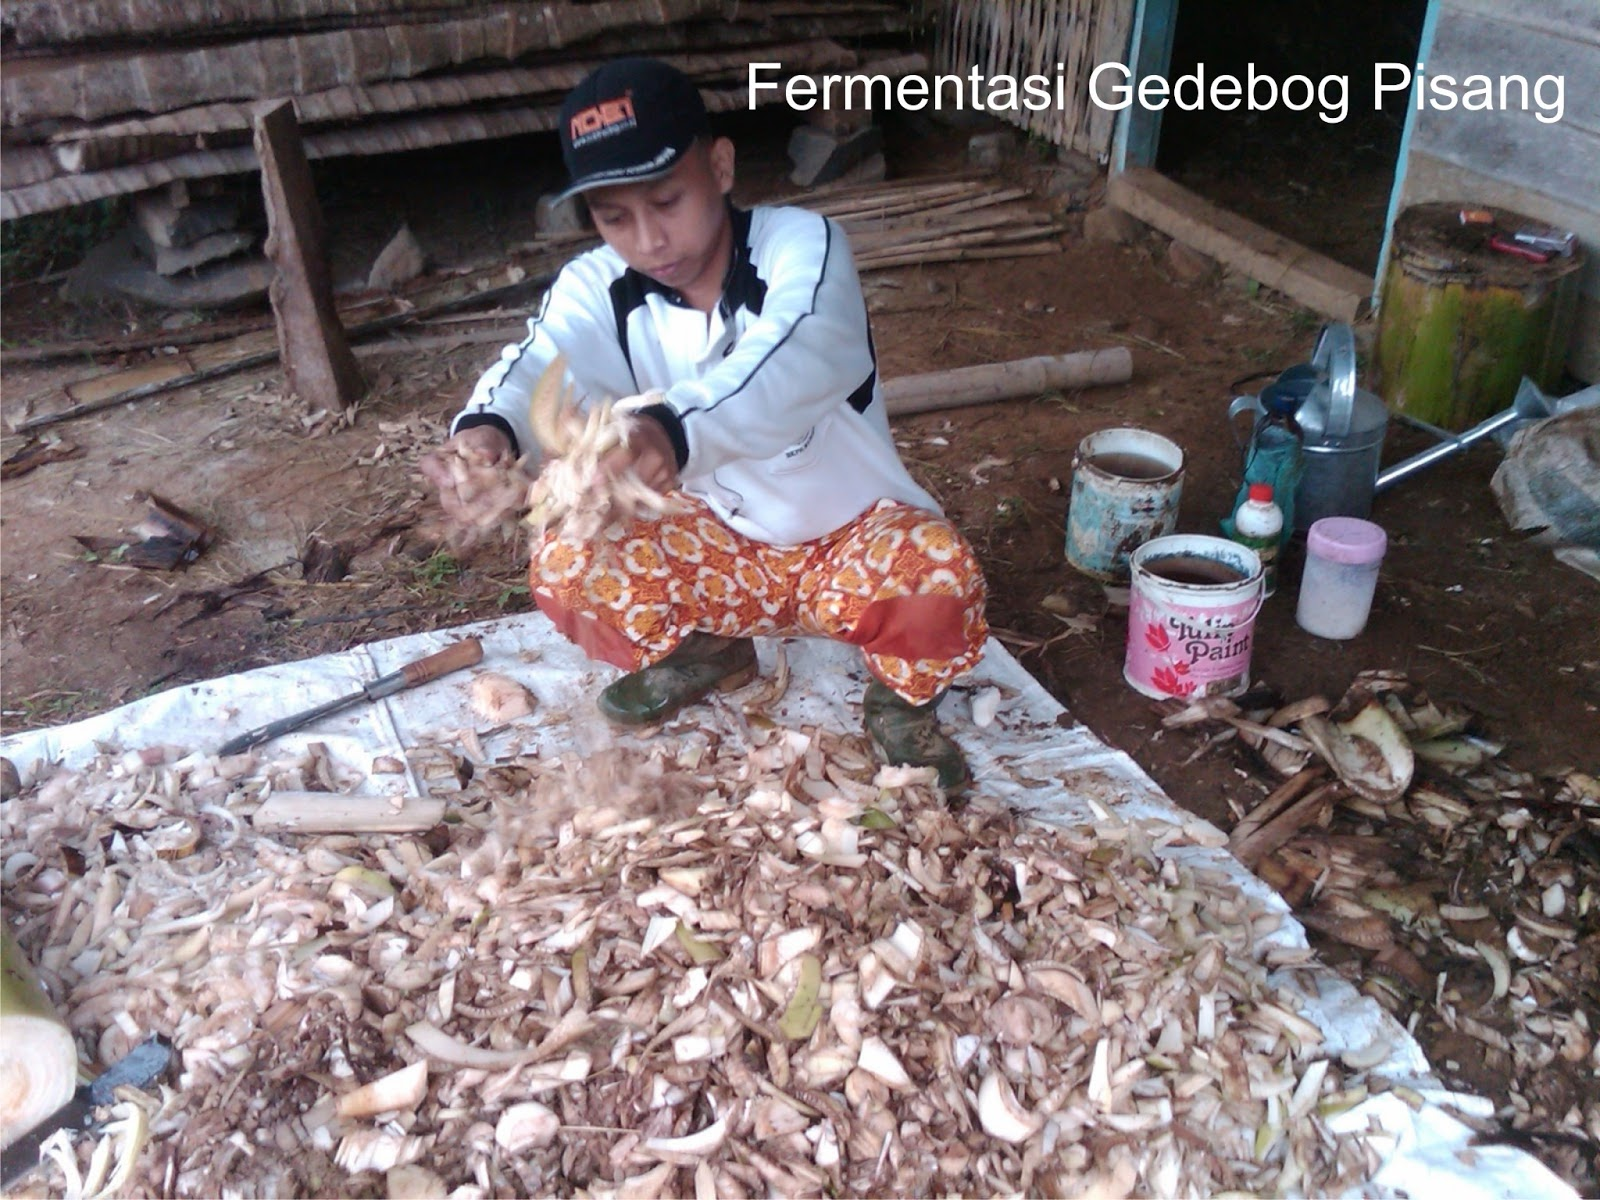 Hcs Success Fermentasi Jerami Dan Gedebok Pisang Pola